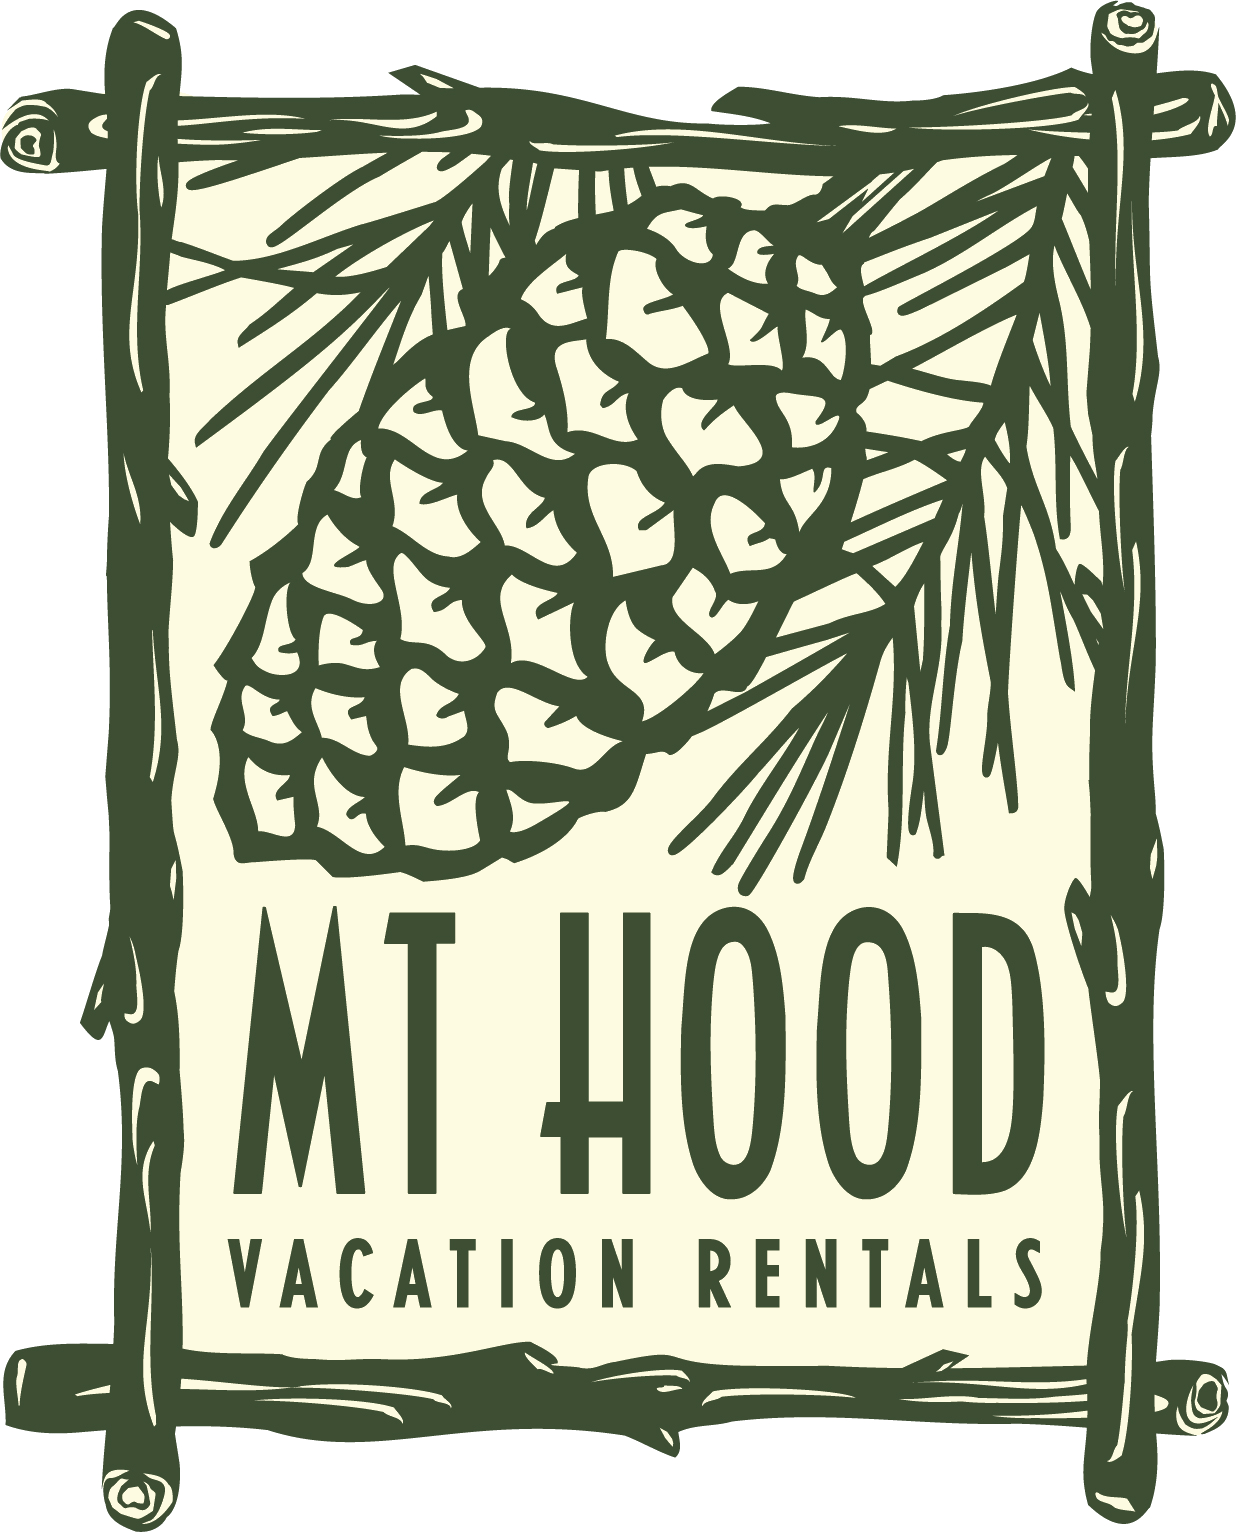 Mt. Hood home vacation rentals